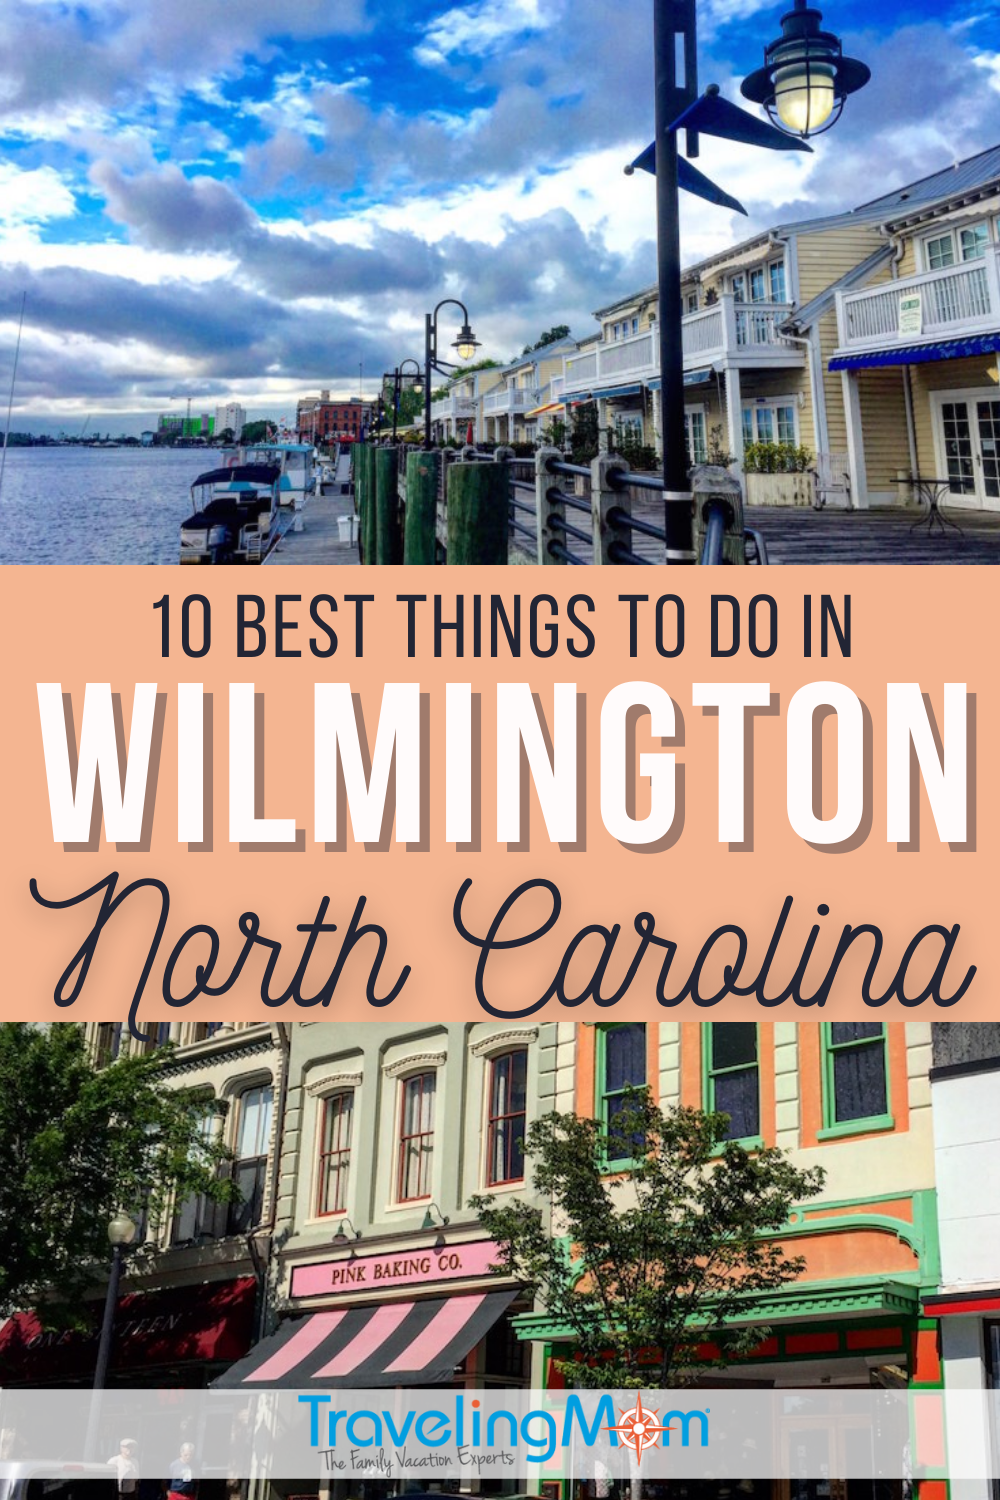 10 best things to do in wilmington north carolina written in text with images of the shore line and buildings